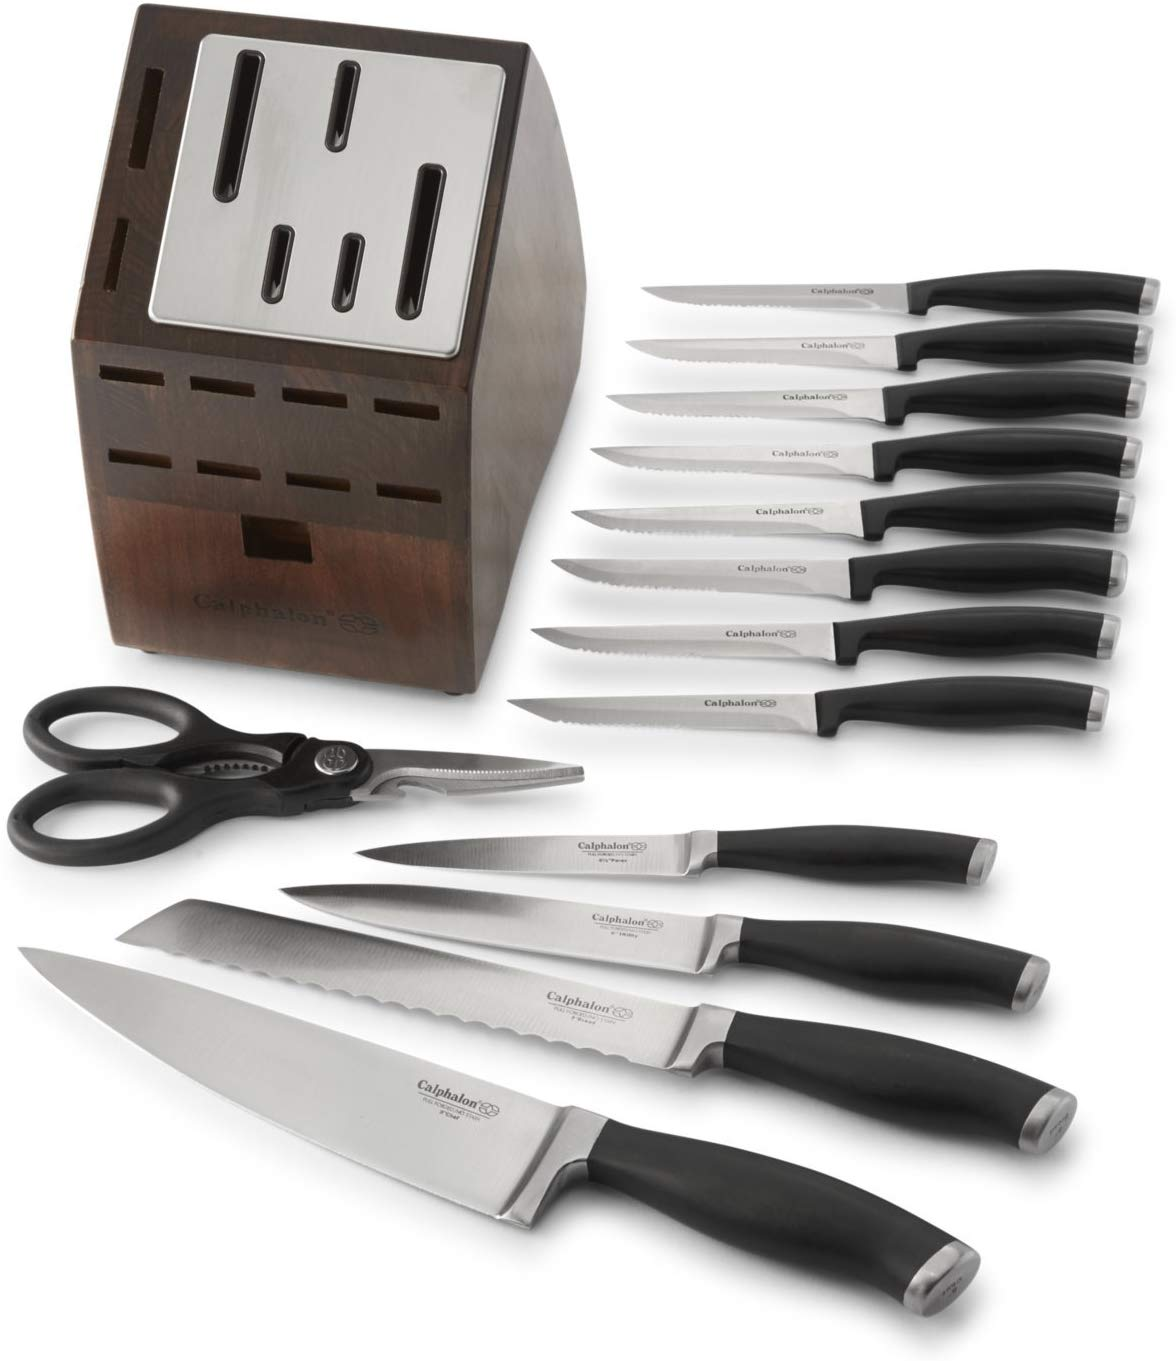 Calphalon Self-Sharpening 14 Piece Cutlery Knife Block Set only $59.97! (was $209)